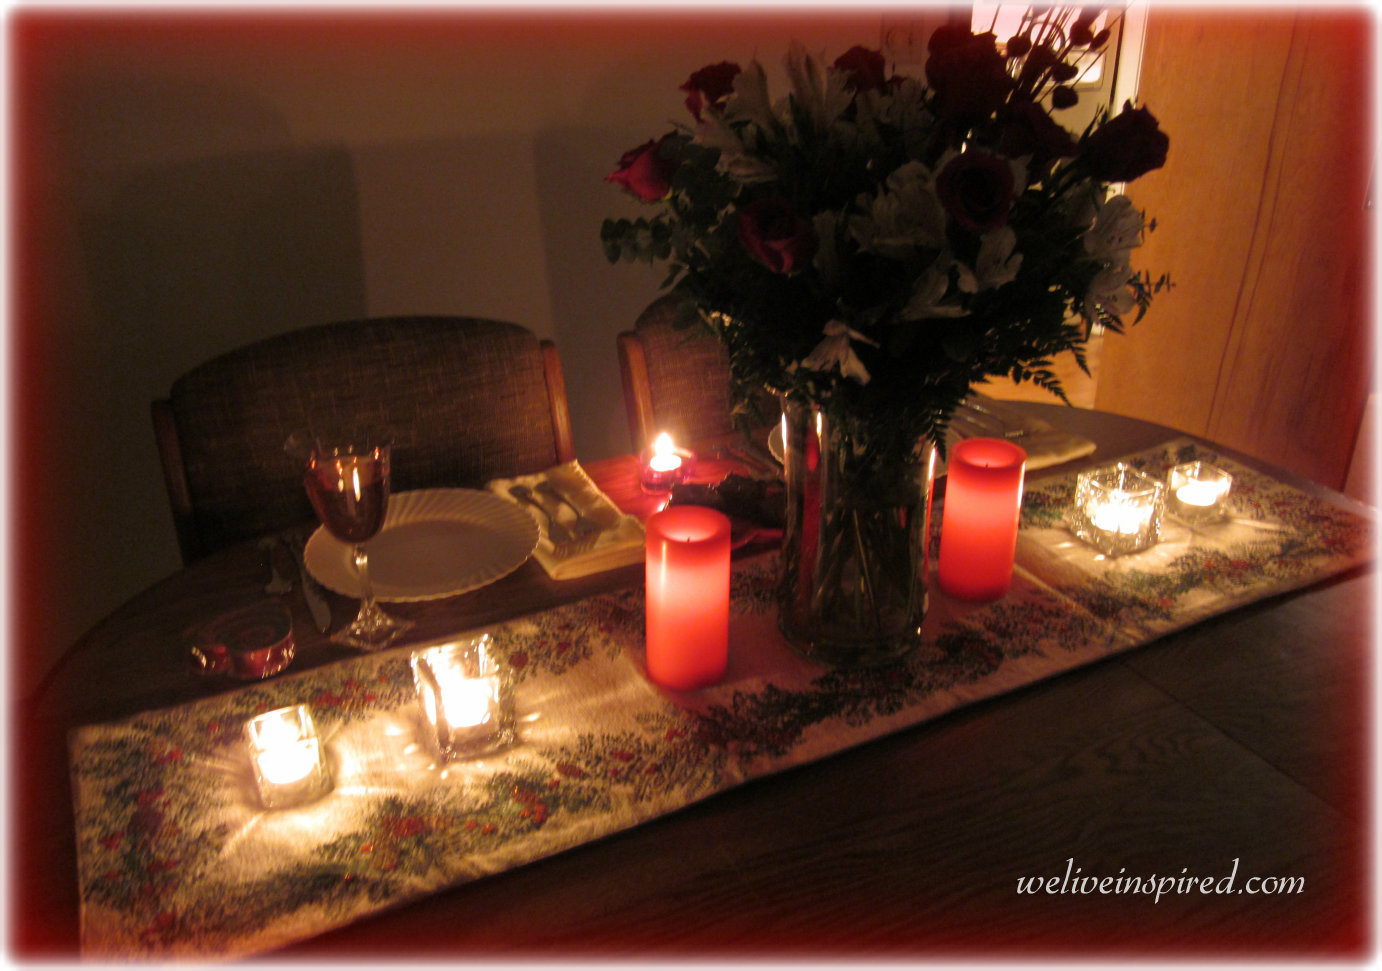 Candle light dinner table for two - Dinner For Two